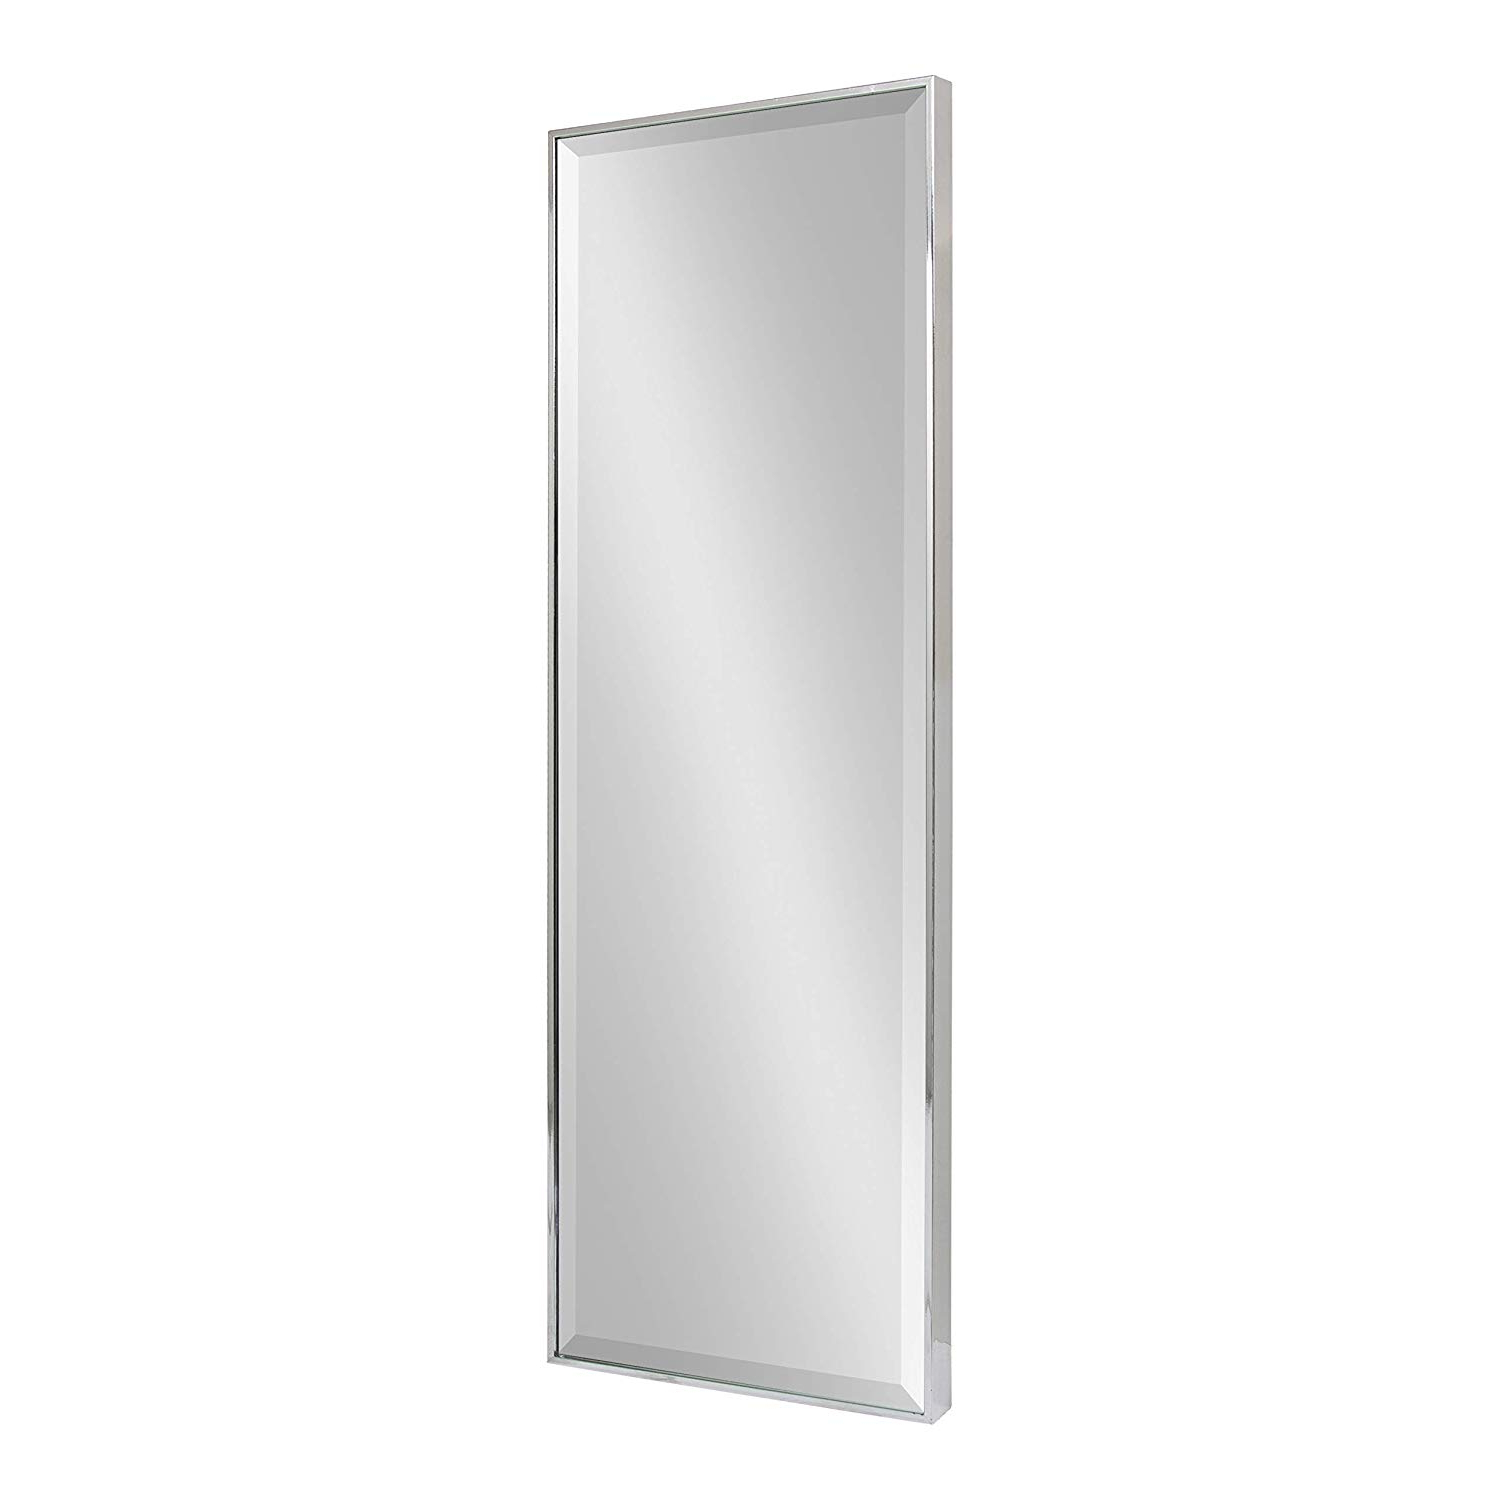 Widely Used Kate And Laurel Rhodes Decorative Frame Full Length Wall Mirror,  16.75X48. (View 20 of 20)